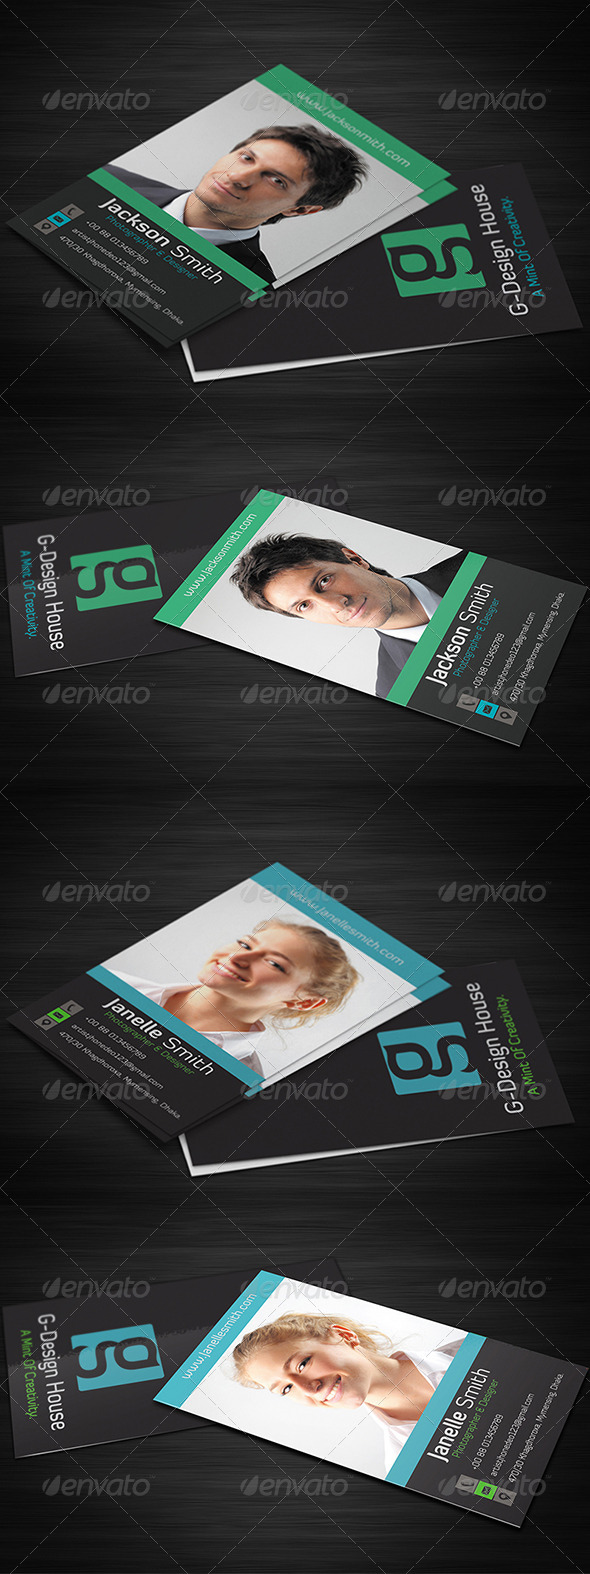 Corporate Business Card Vol-2 - Corporate Business Cards